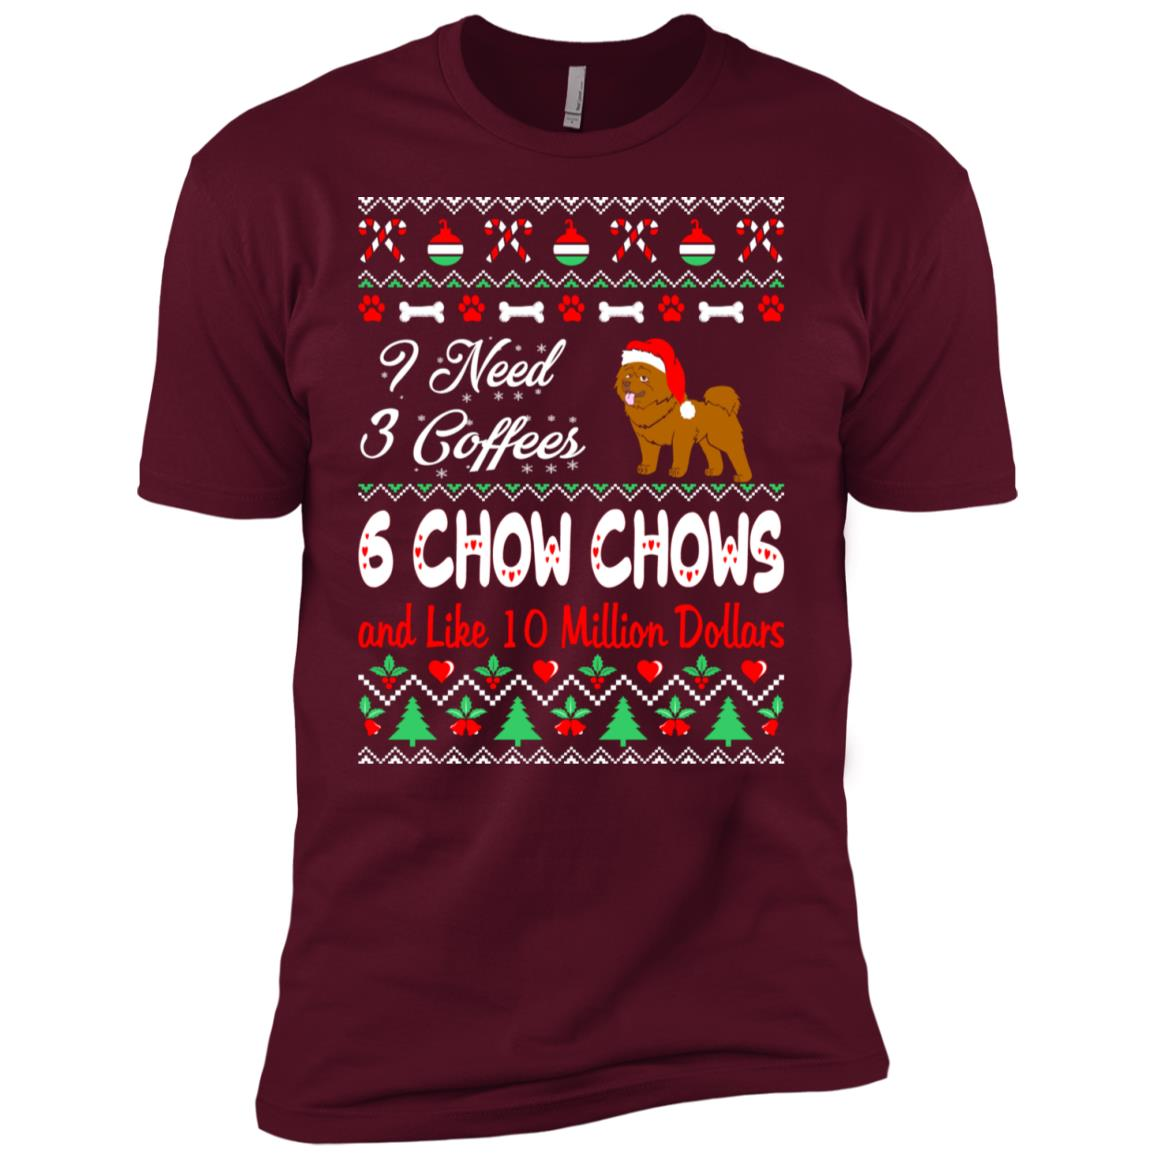 Need 3 Coffees 6 Chow Chows Christmas Ugly Sweater Men Short Sleeve T-Shirt